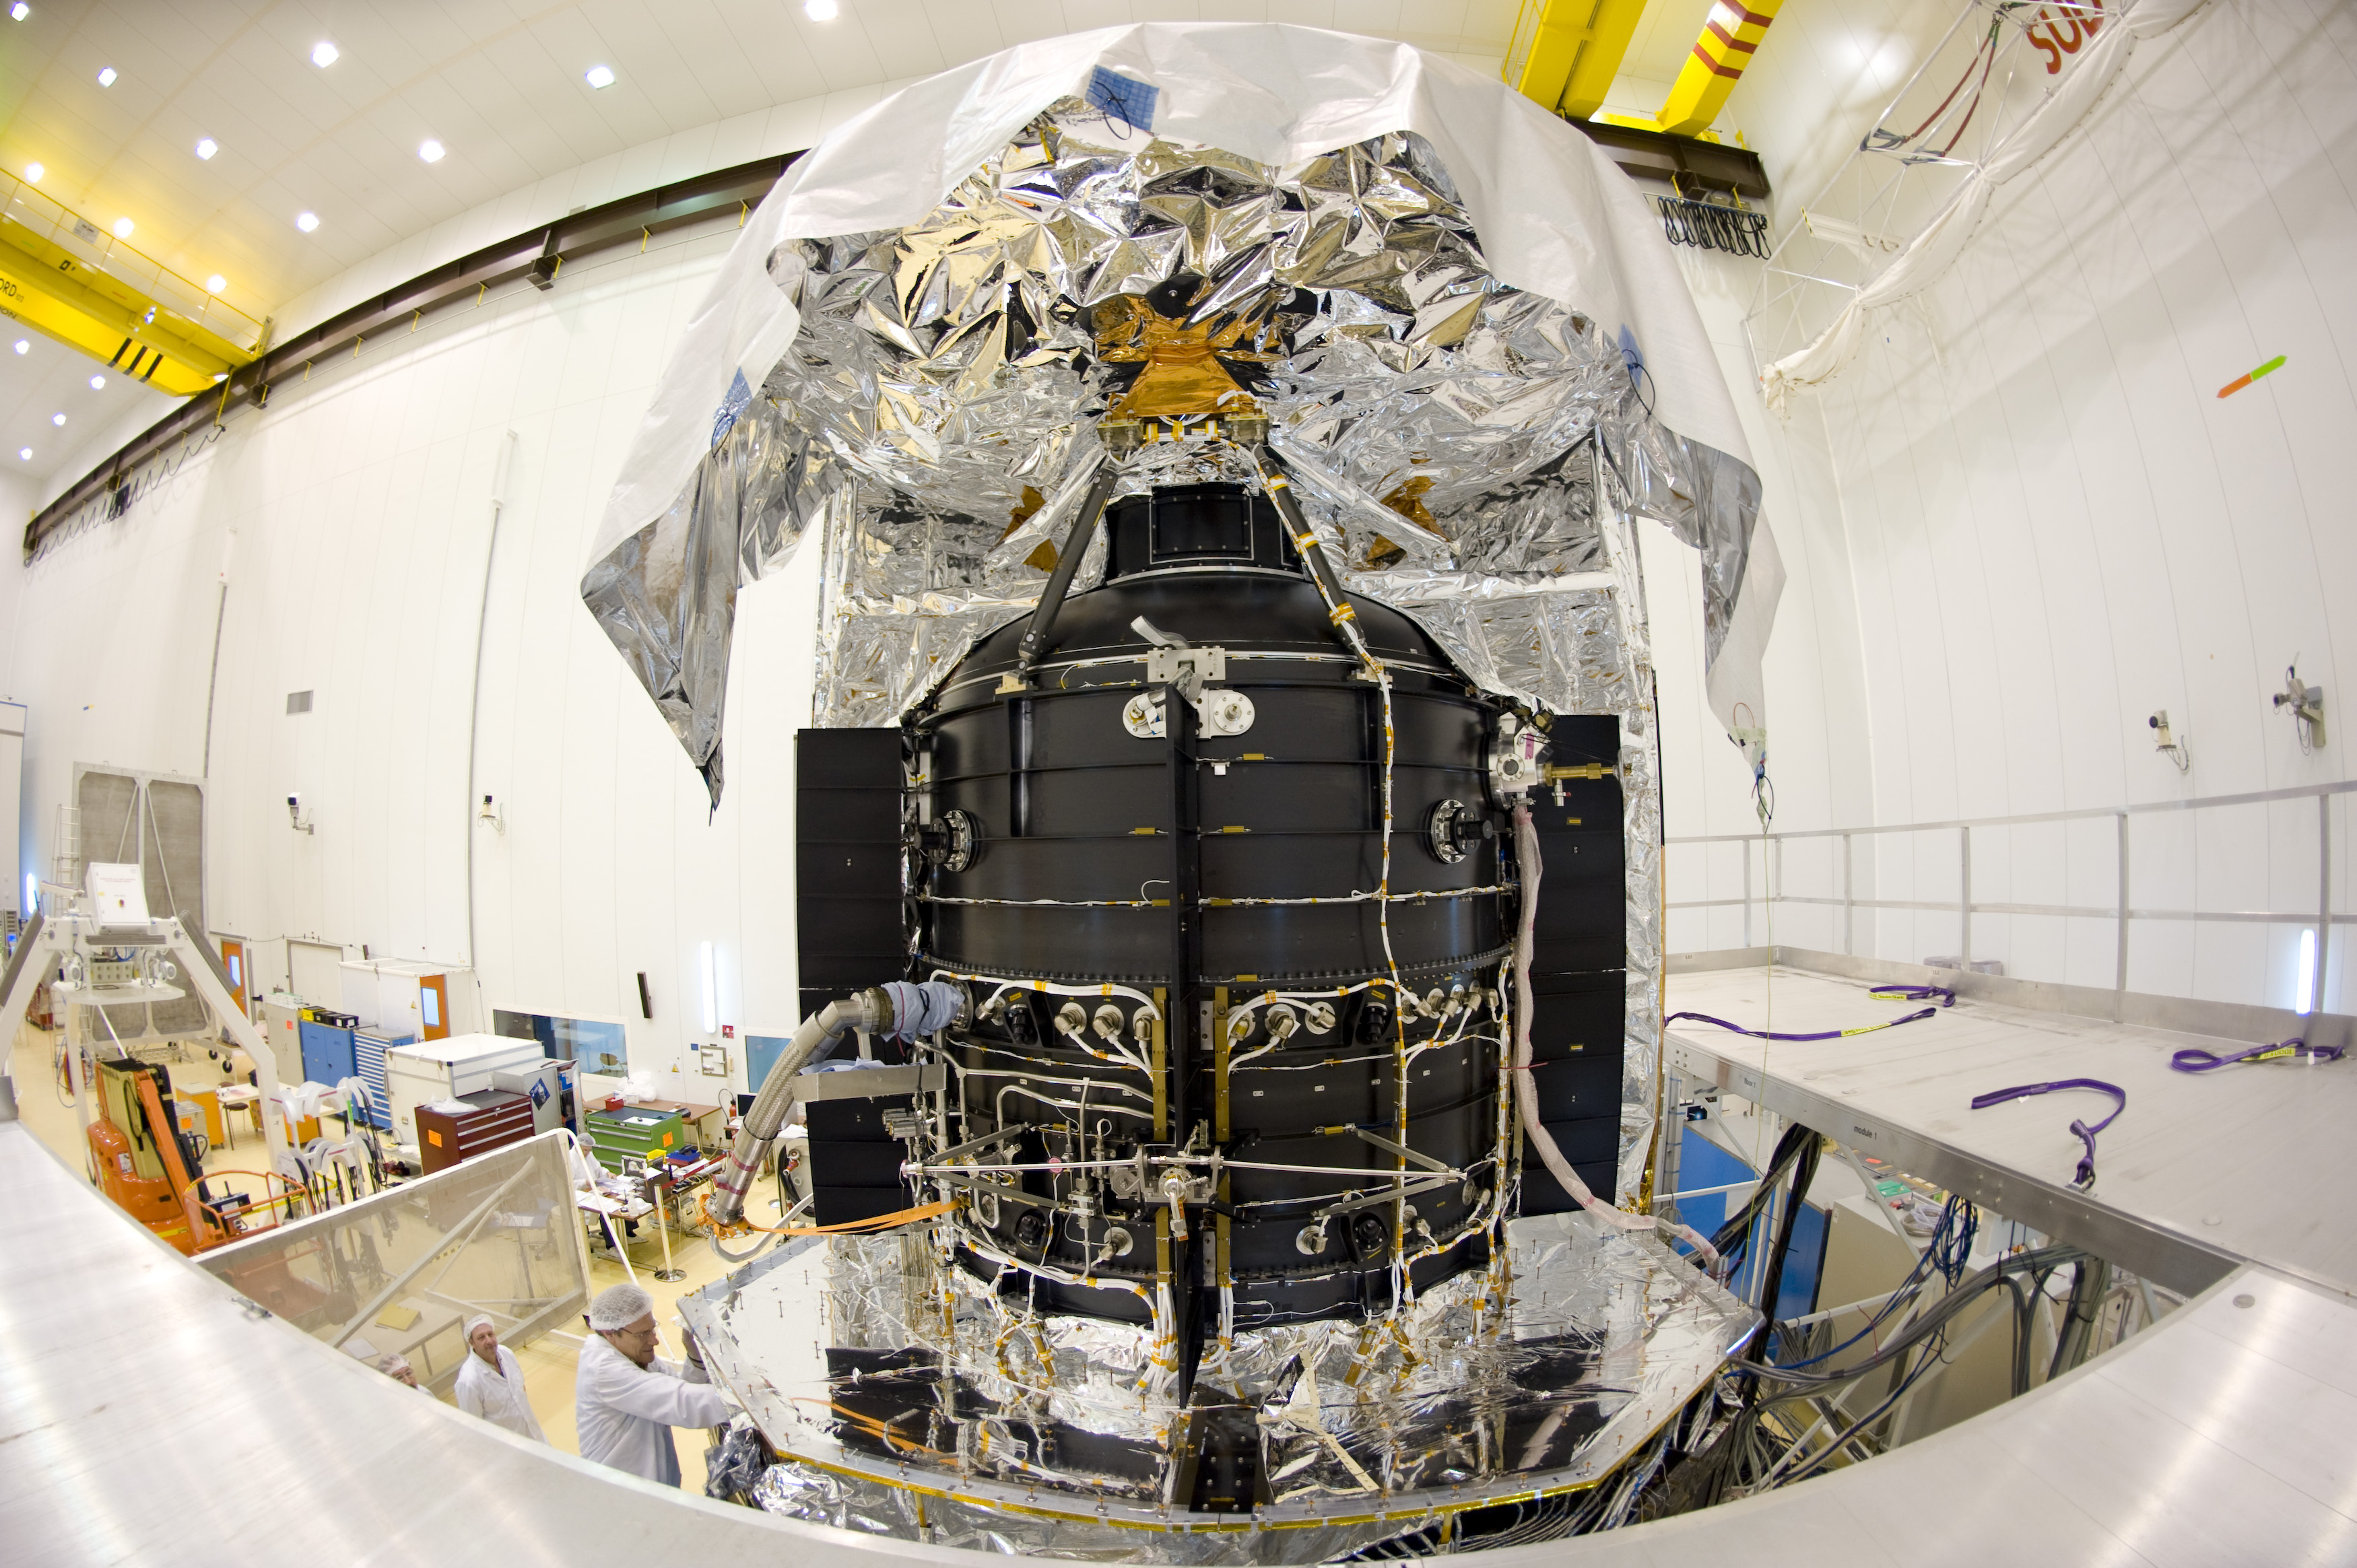 The Herschel spacecraft in the S1B clean room at Europe's launch site (CSG) in Kourou, French Guiana. A protective foil is draped over the satellite to protect Herschel's giant primary mirror from contamination.